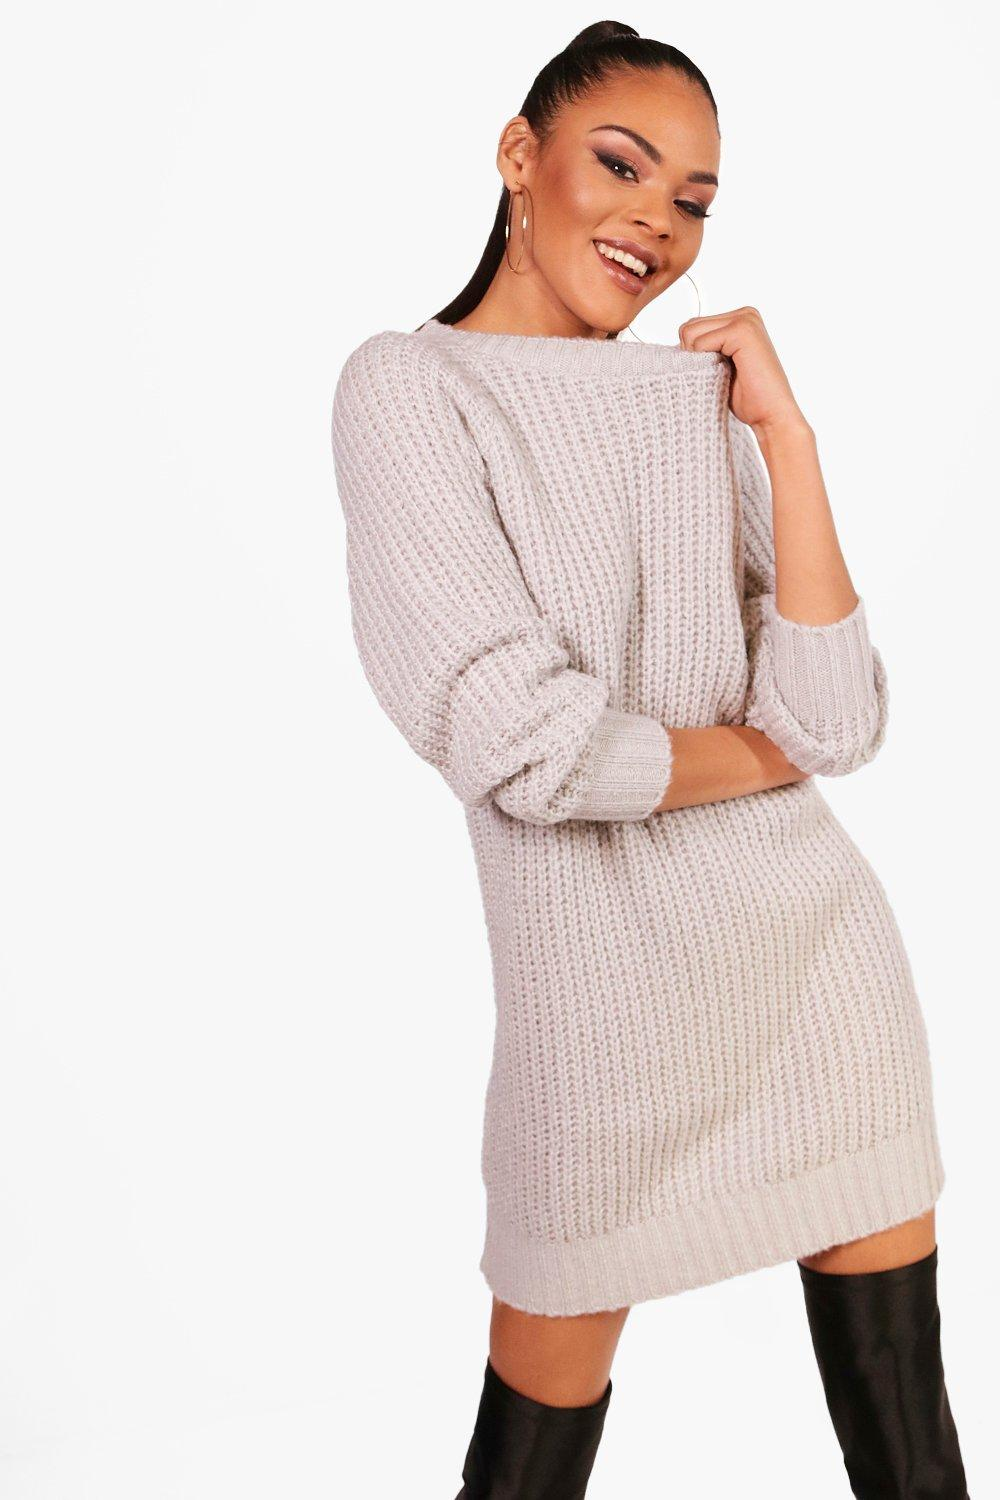 Find jumper outfits for women at ShopStyle. Shop the latest collection of jumper outfits for women from the most popular stores - all in one place.